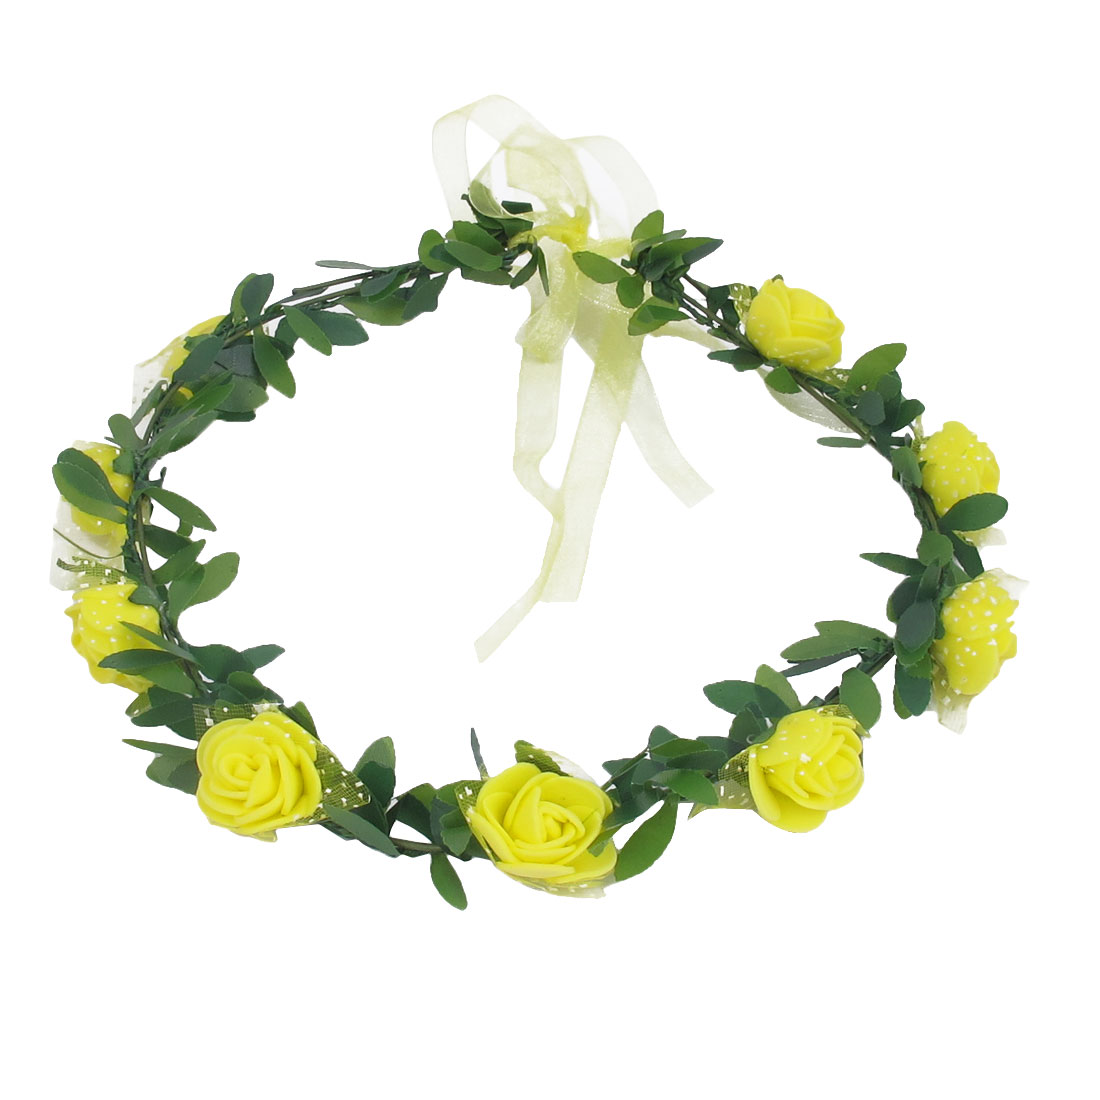 Lady Wedding Party Flower Decor Adjustable Headwear Headdress Hair Crown Wreath Yellow